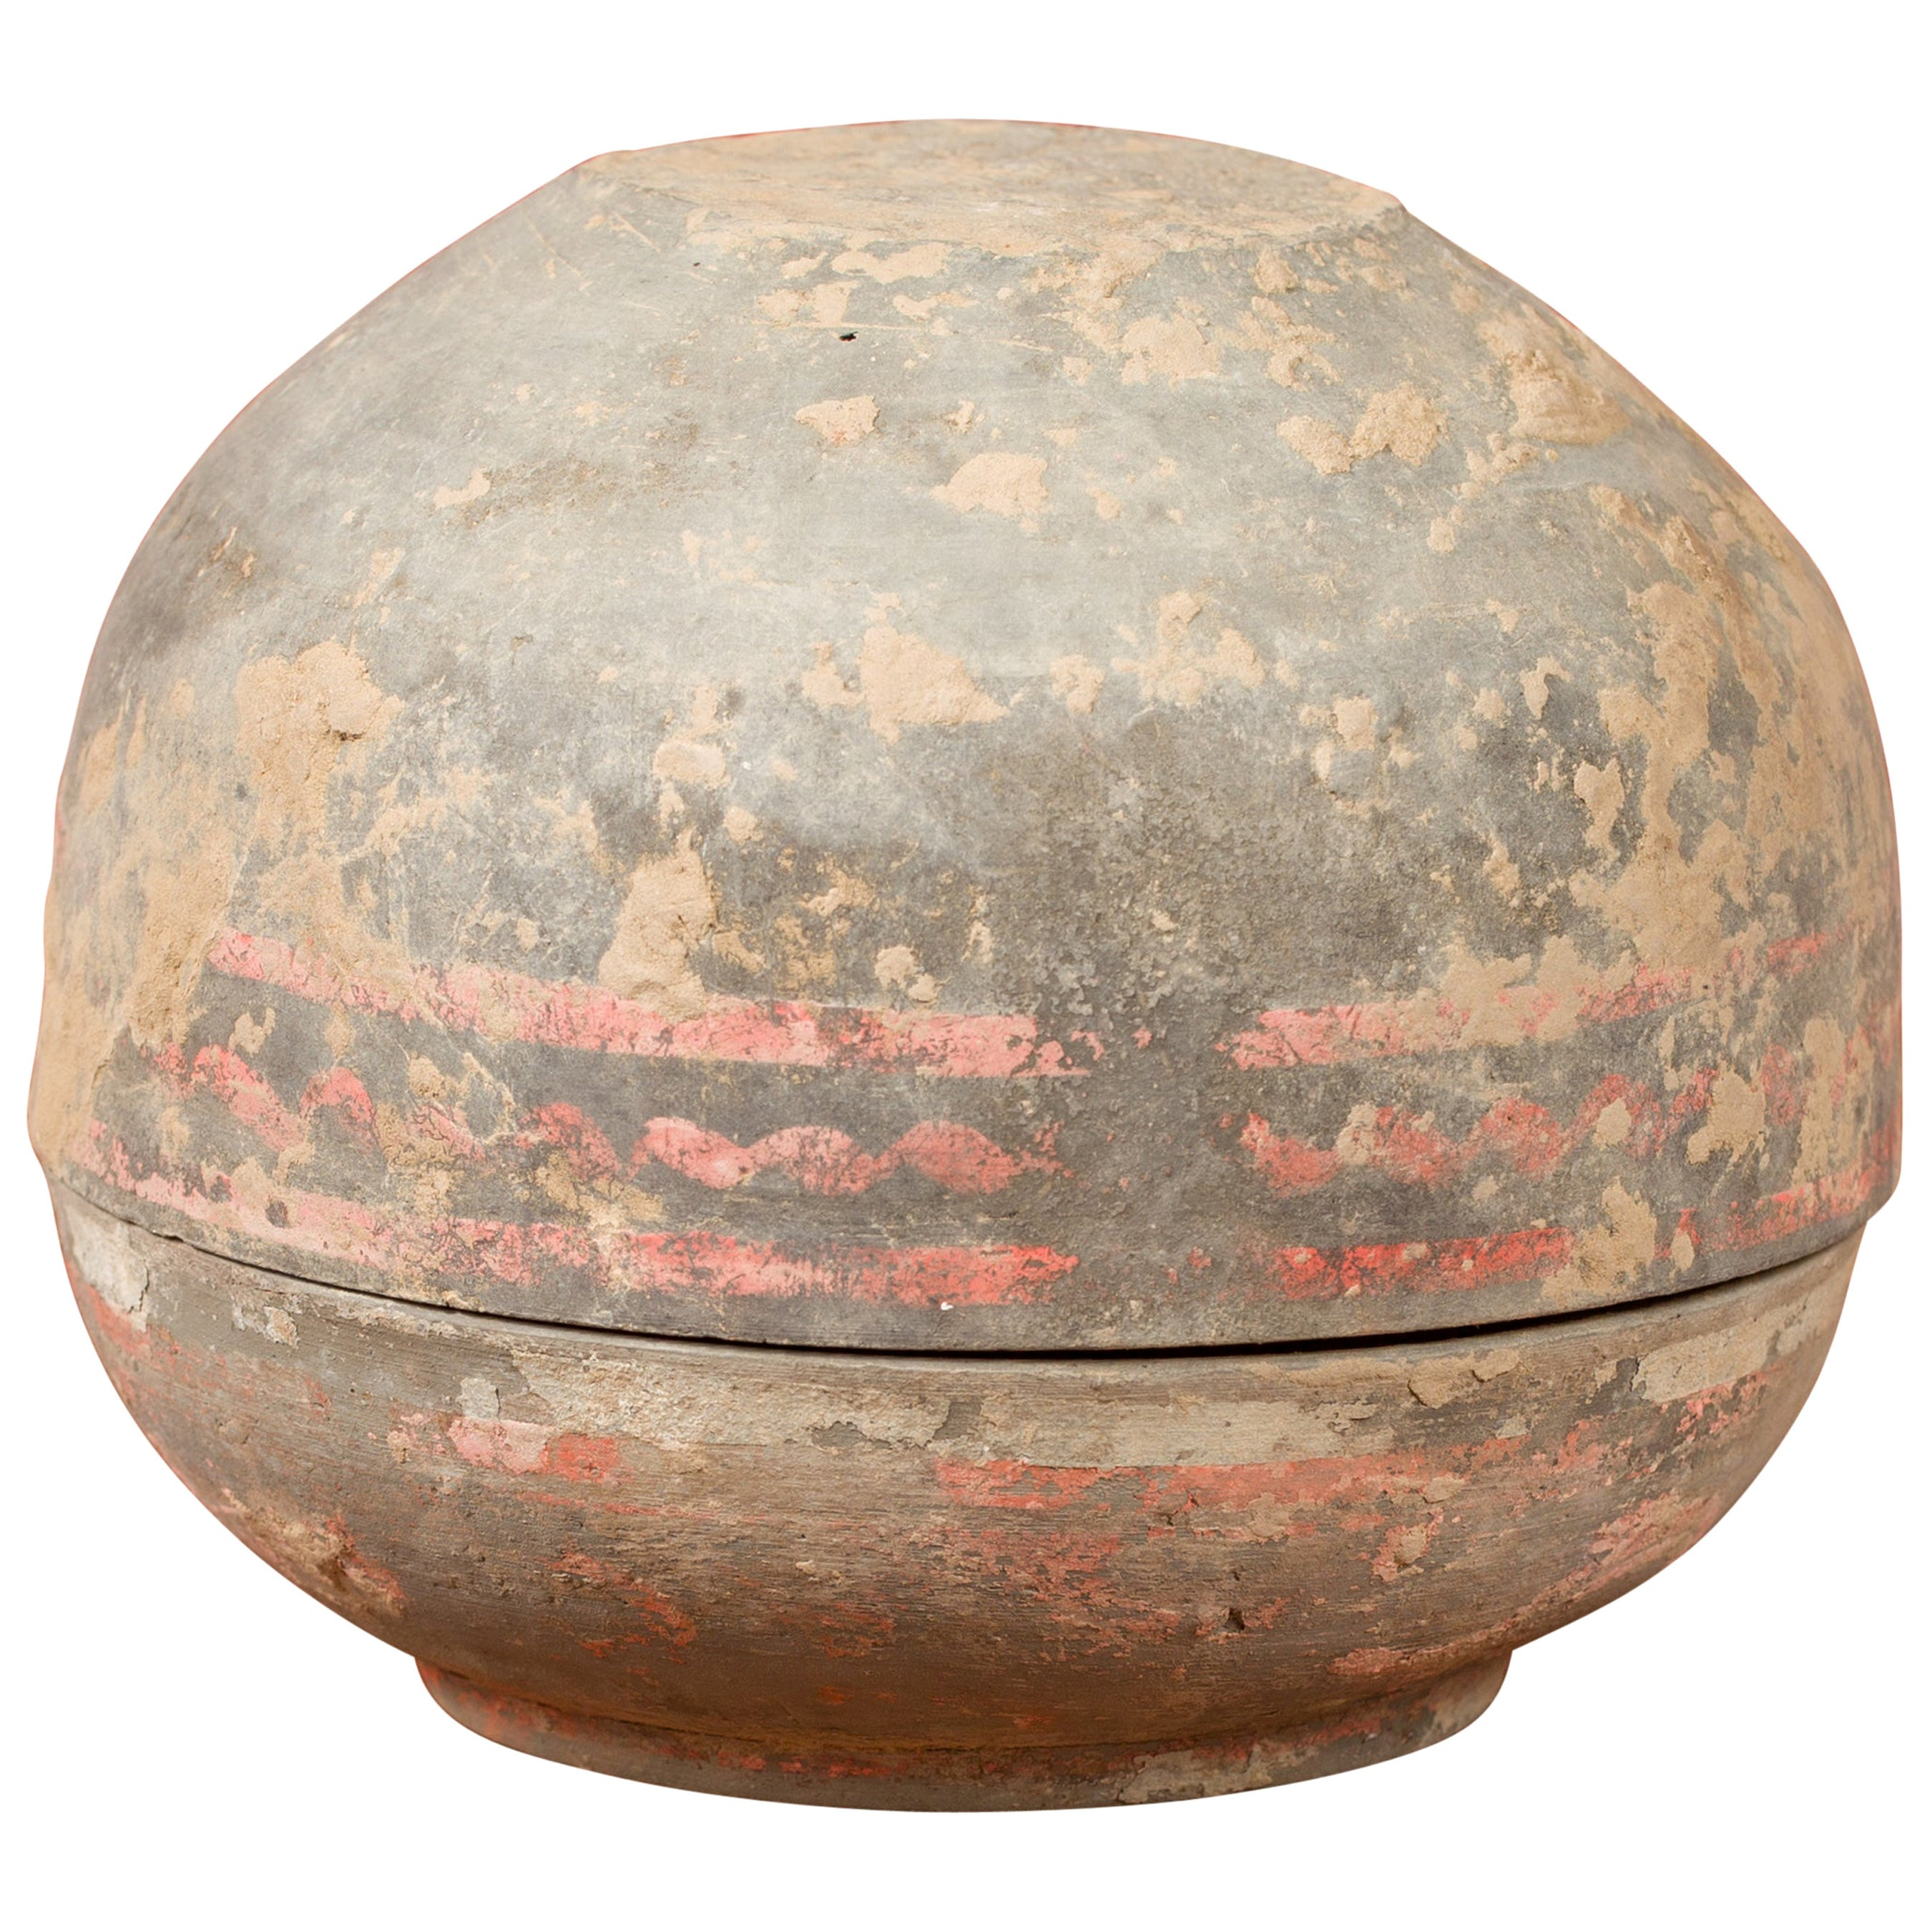 Petite Chinese Han Dynasty Lidded Vessel with Original Paint circa 202 BC-200 AD